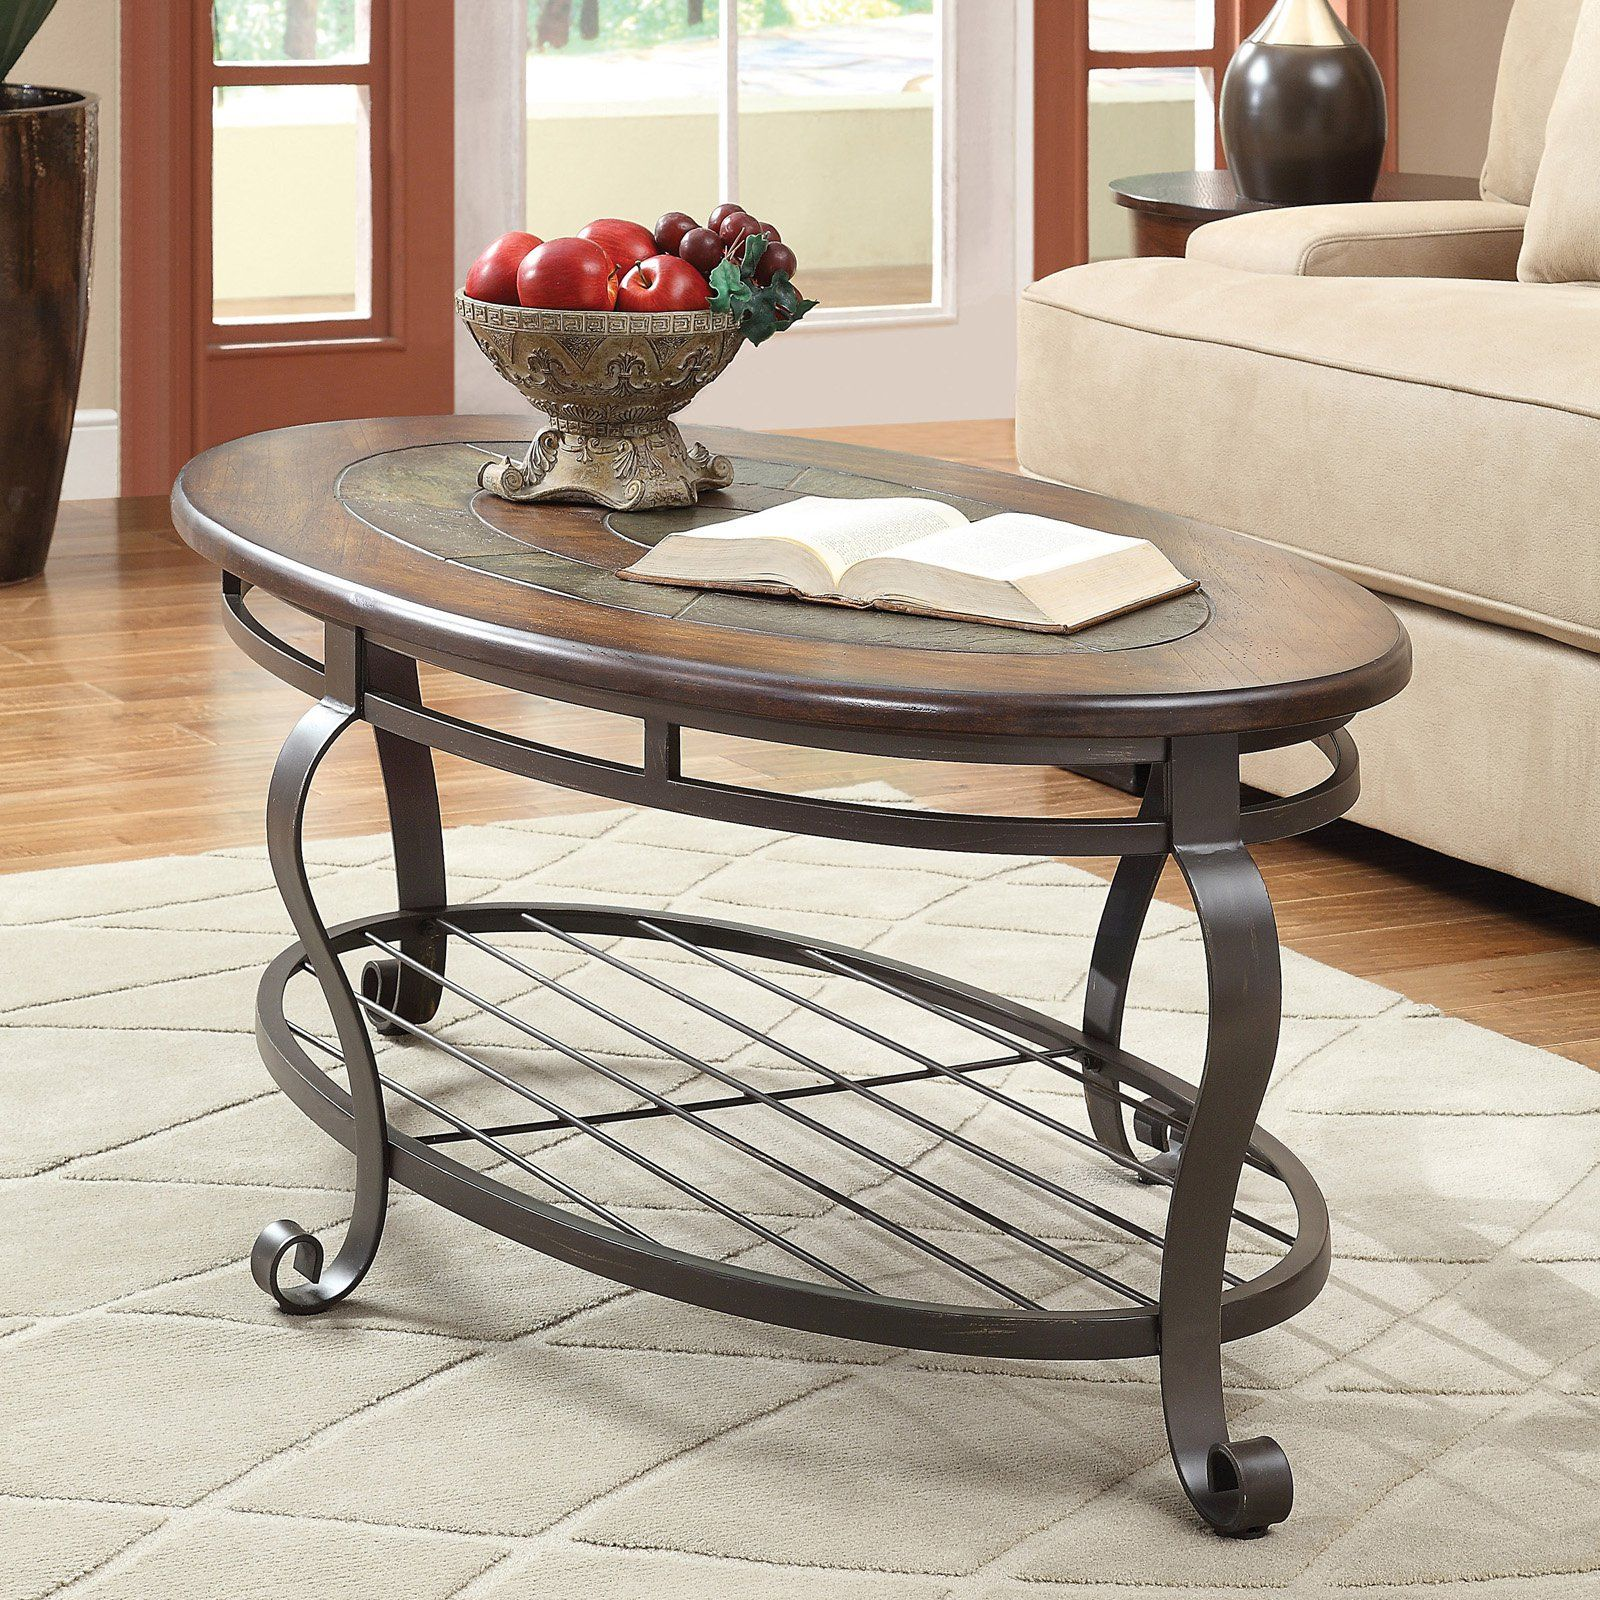 Riverside Eastview Oval Cocktail Table Tuscan Sun From Hayneedle Com Coffee Table Riverside Furniture Furniture [ 1600 x 1600 Pixel ]